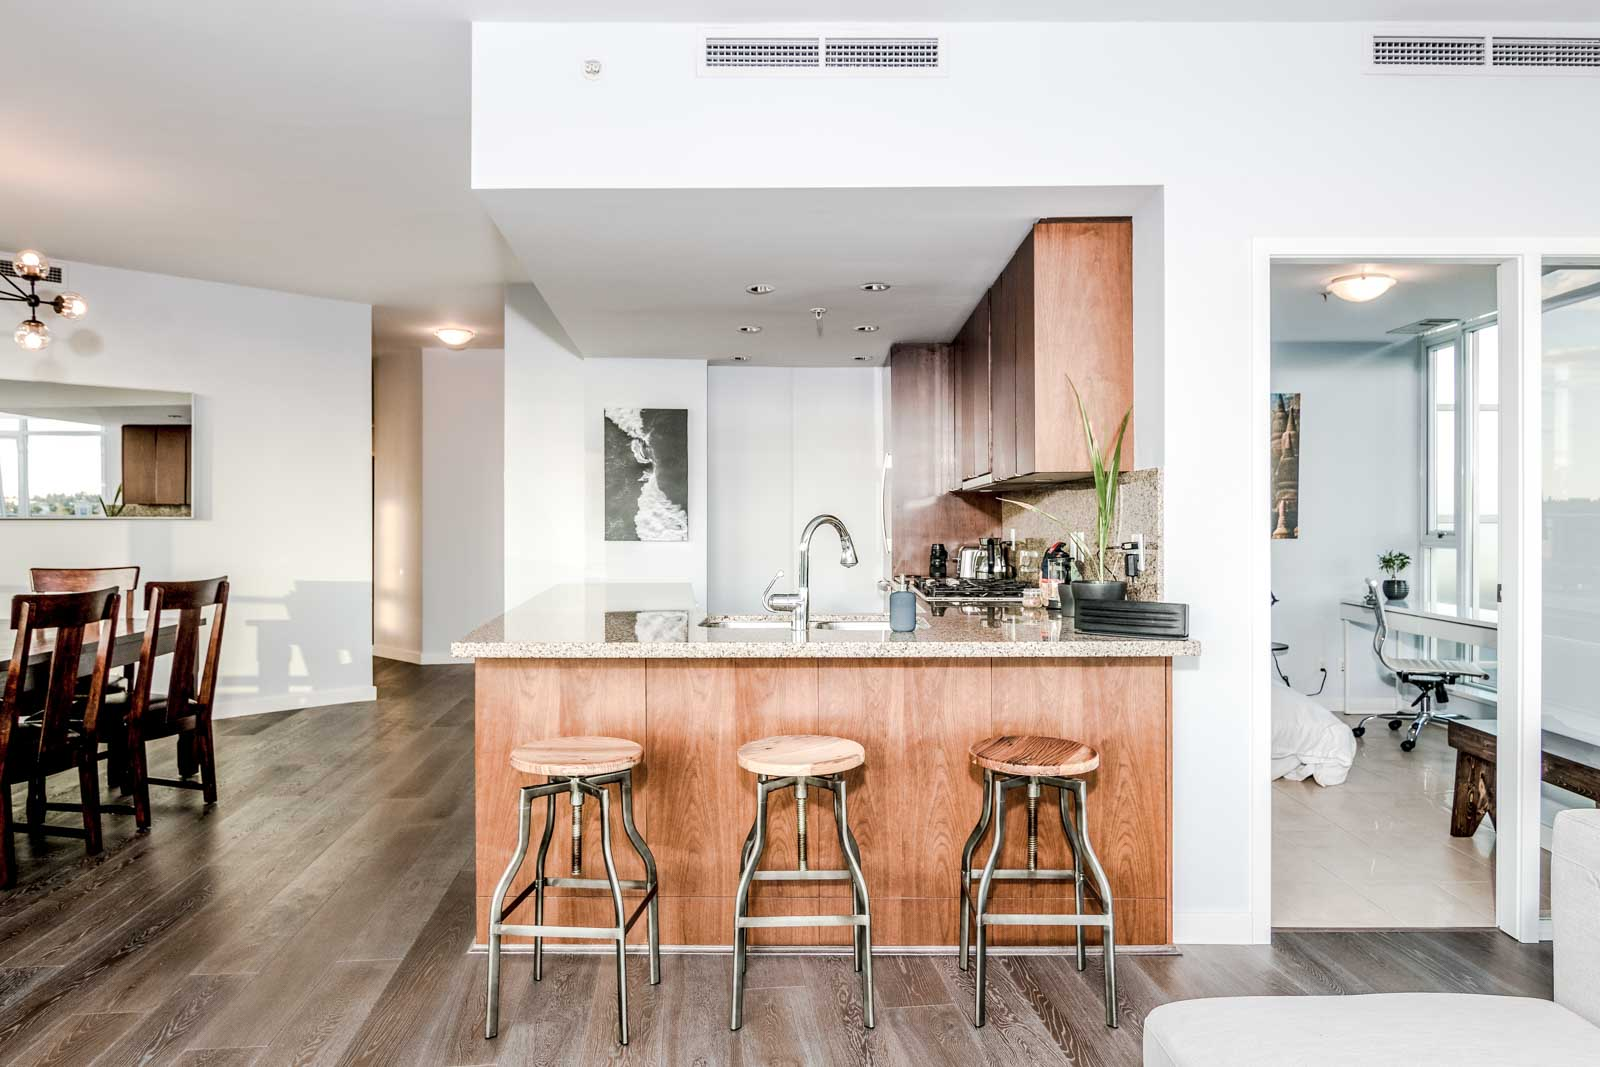 Kitchen with Bar Stools in Olympic Village Vancouver Rental at 918 Cooperage Way